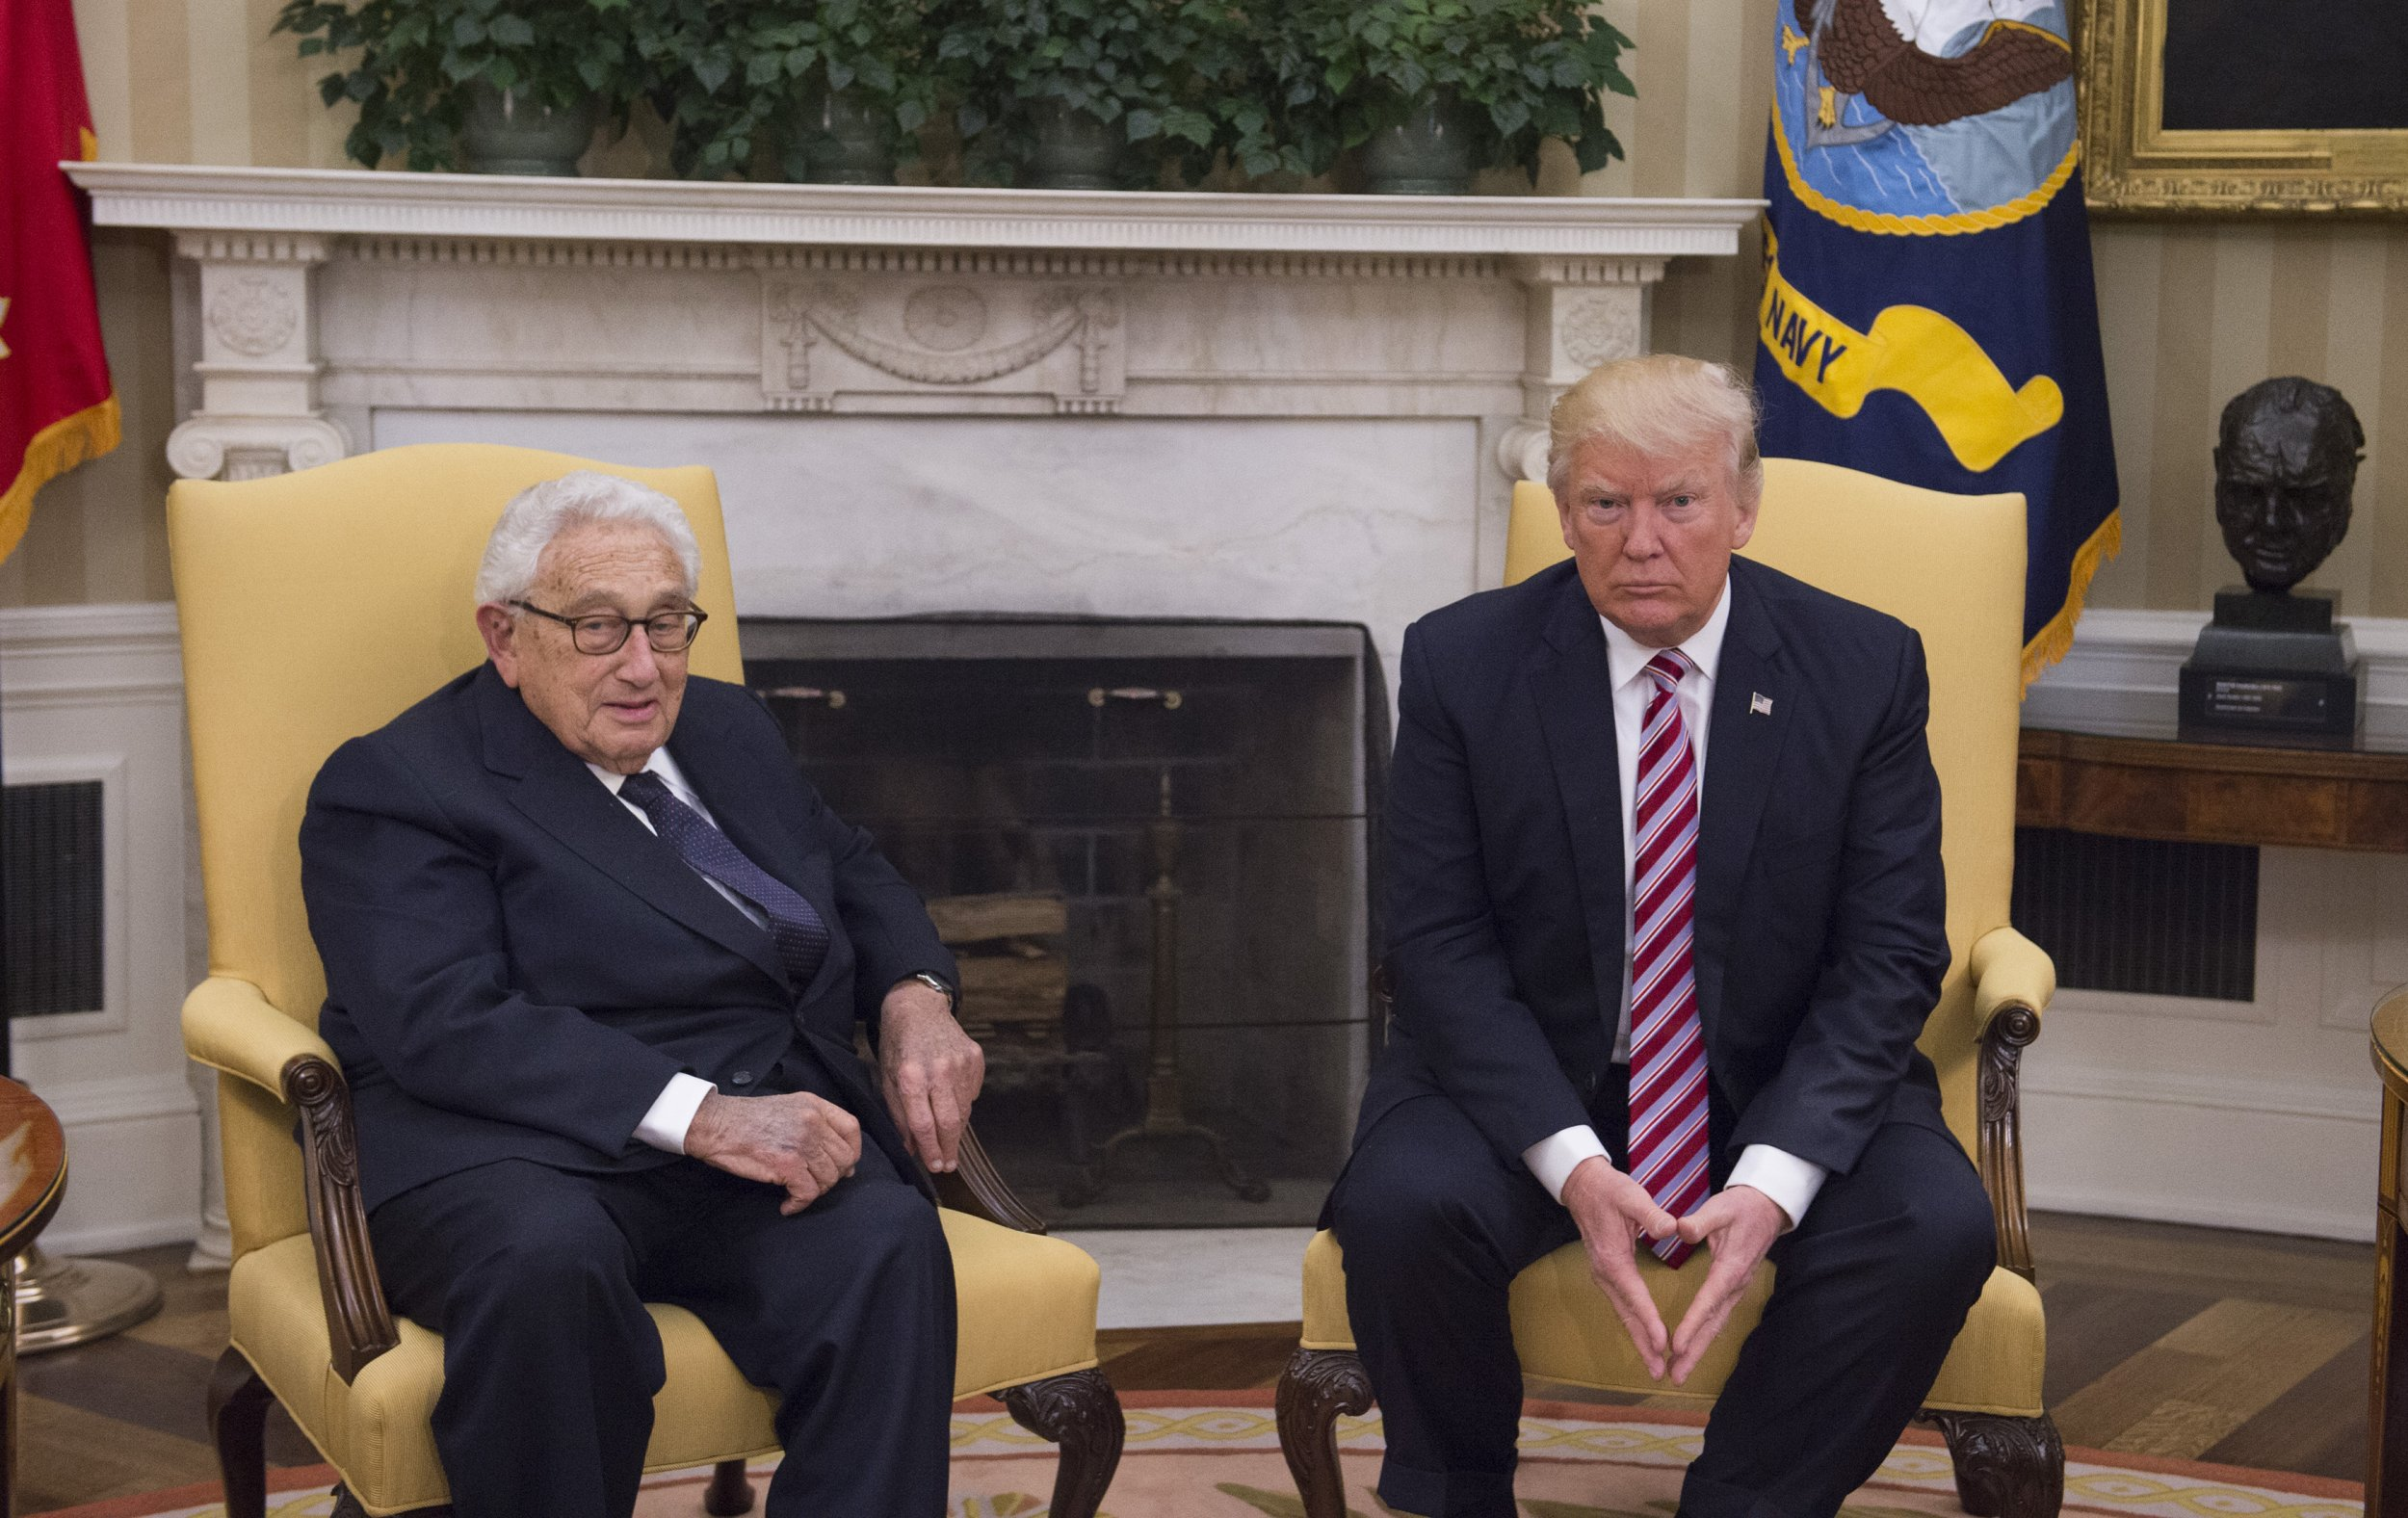 Kissinger and Trump